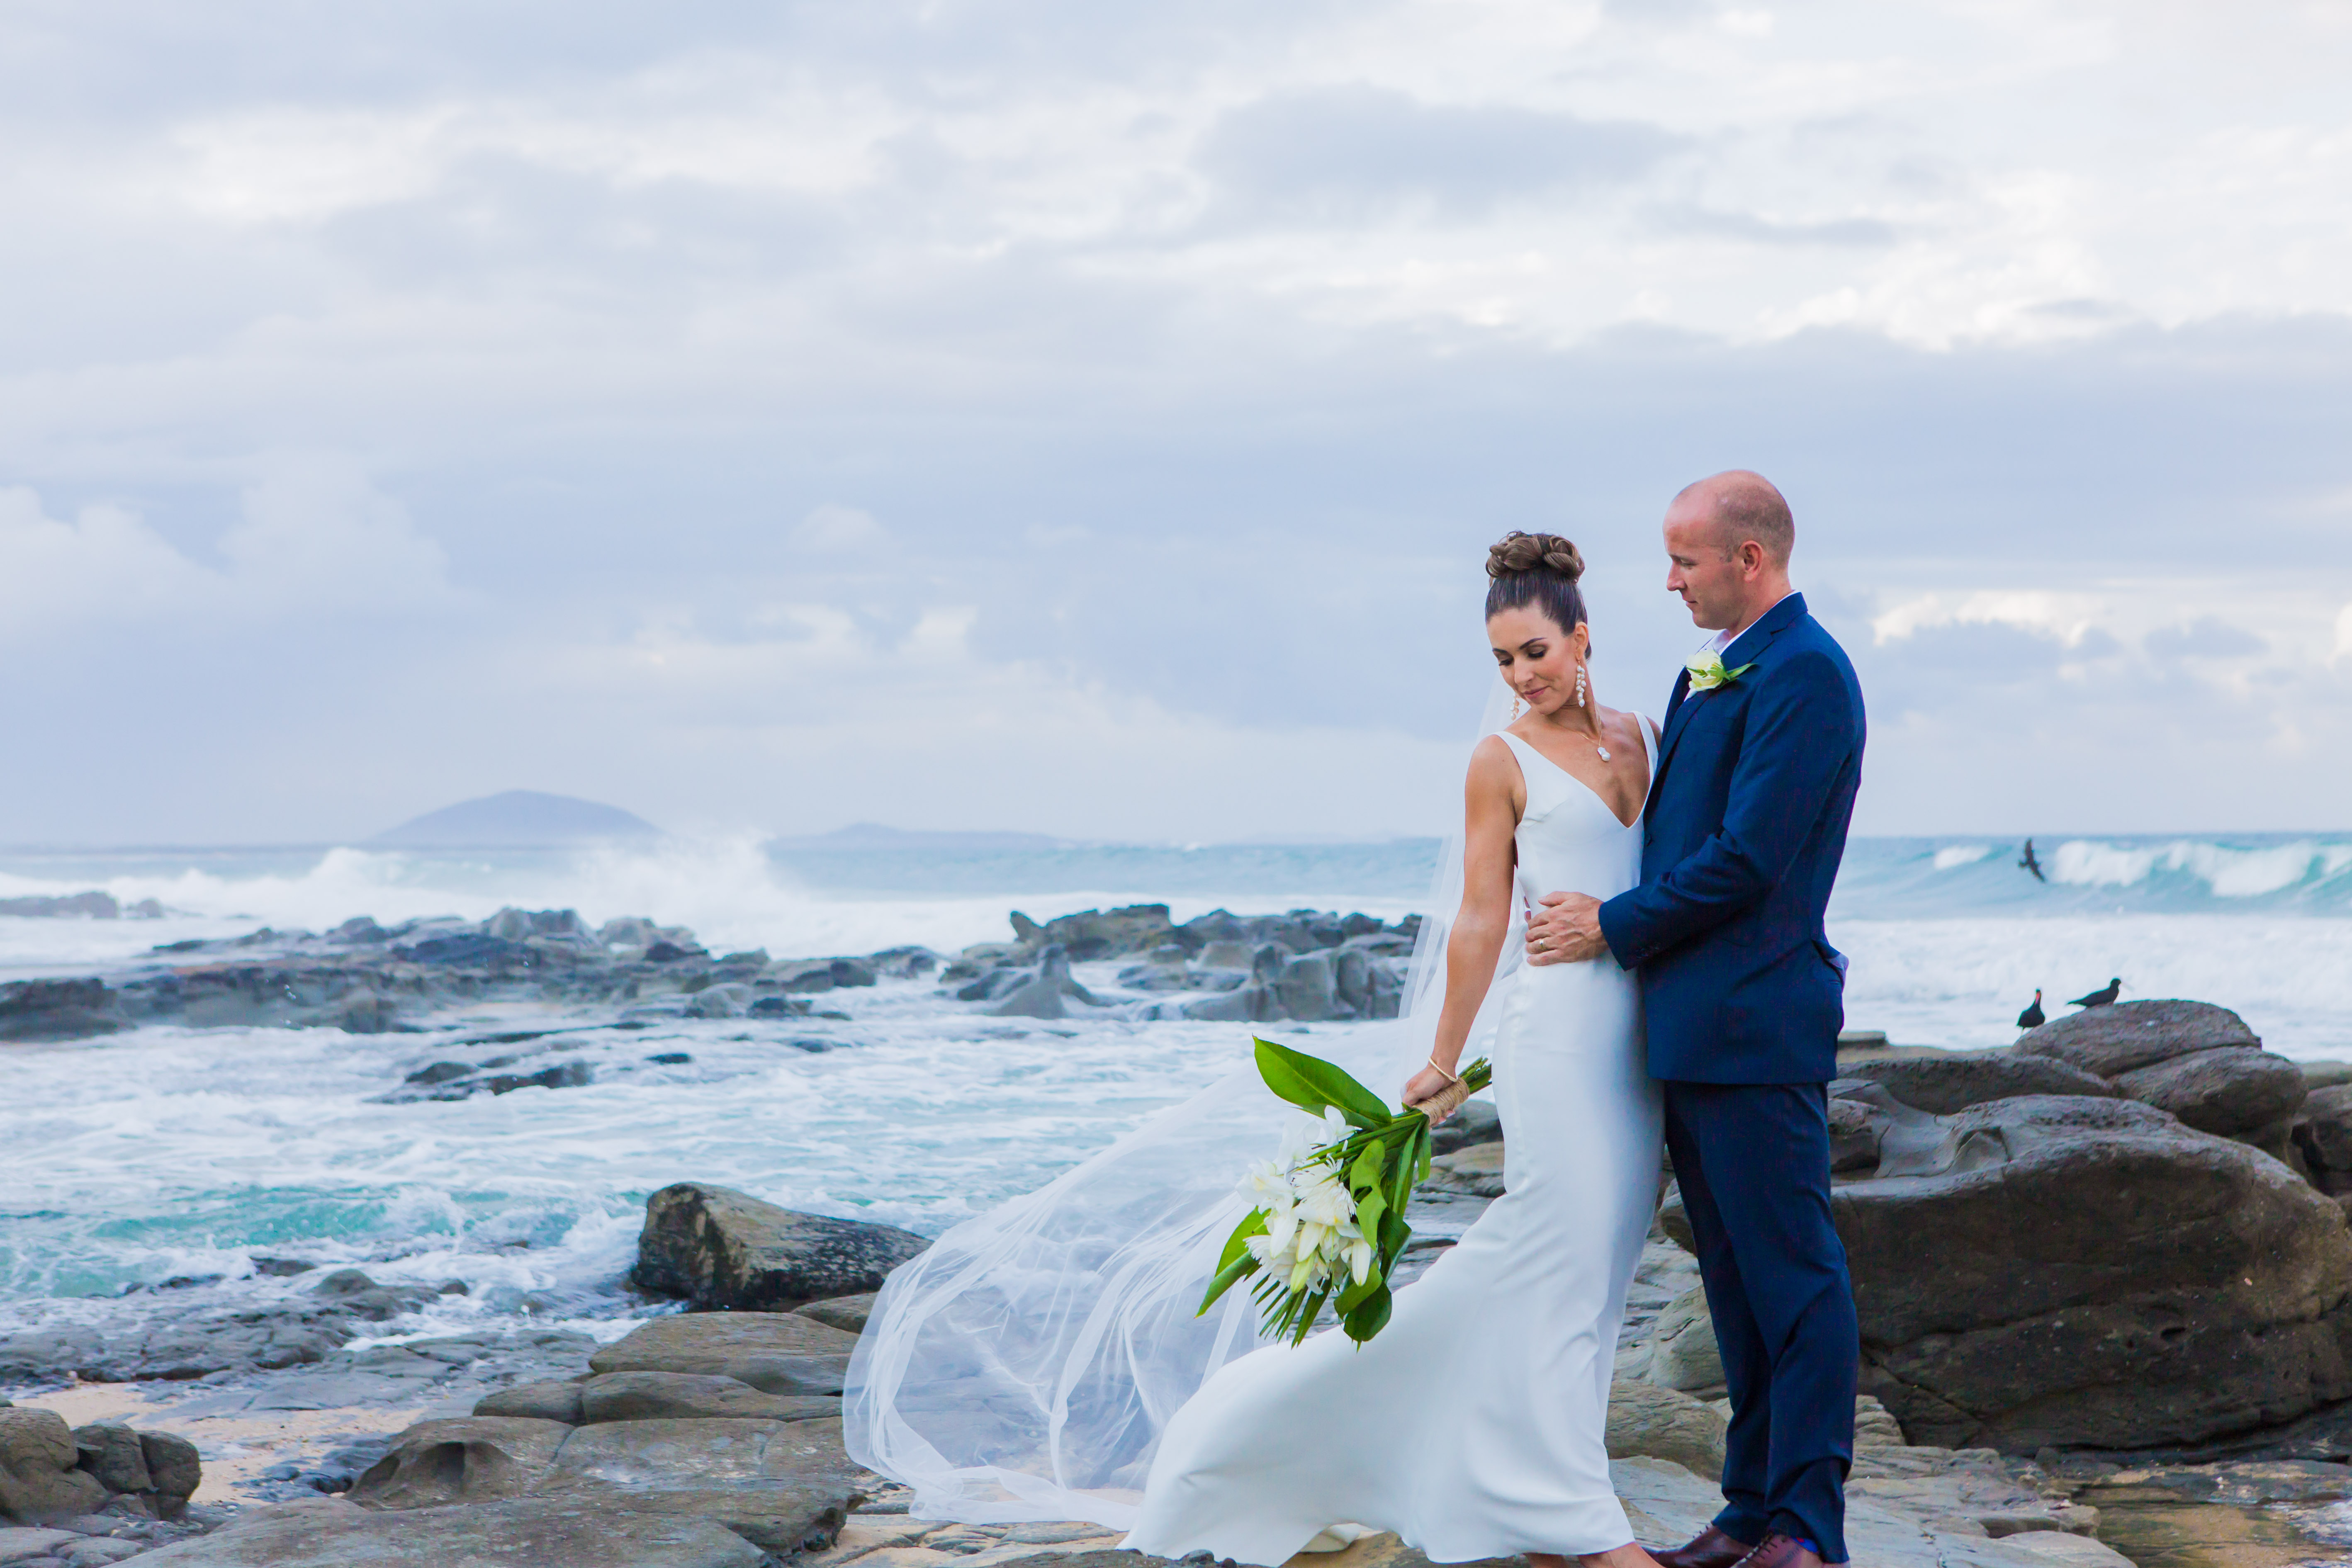 Mooloolaba wedding